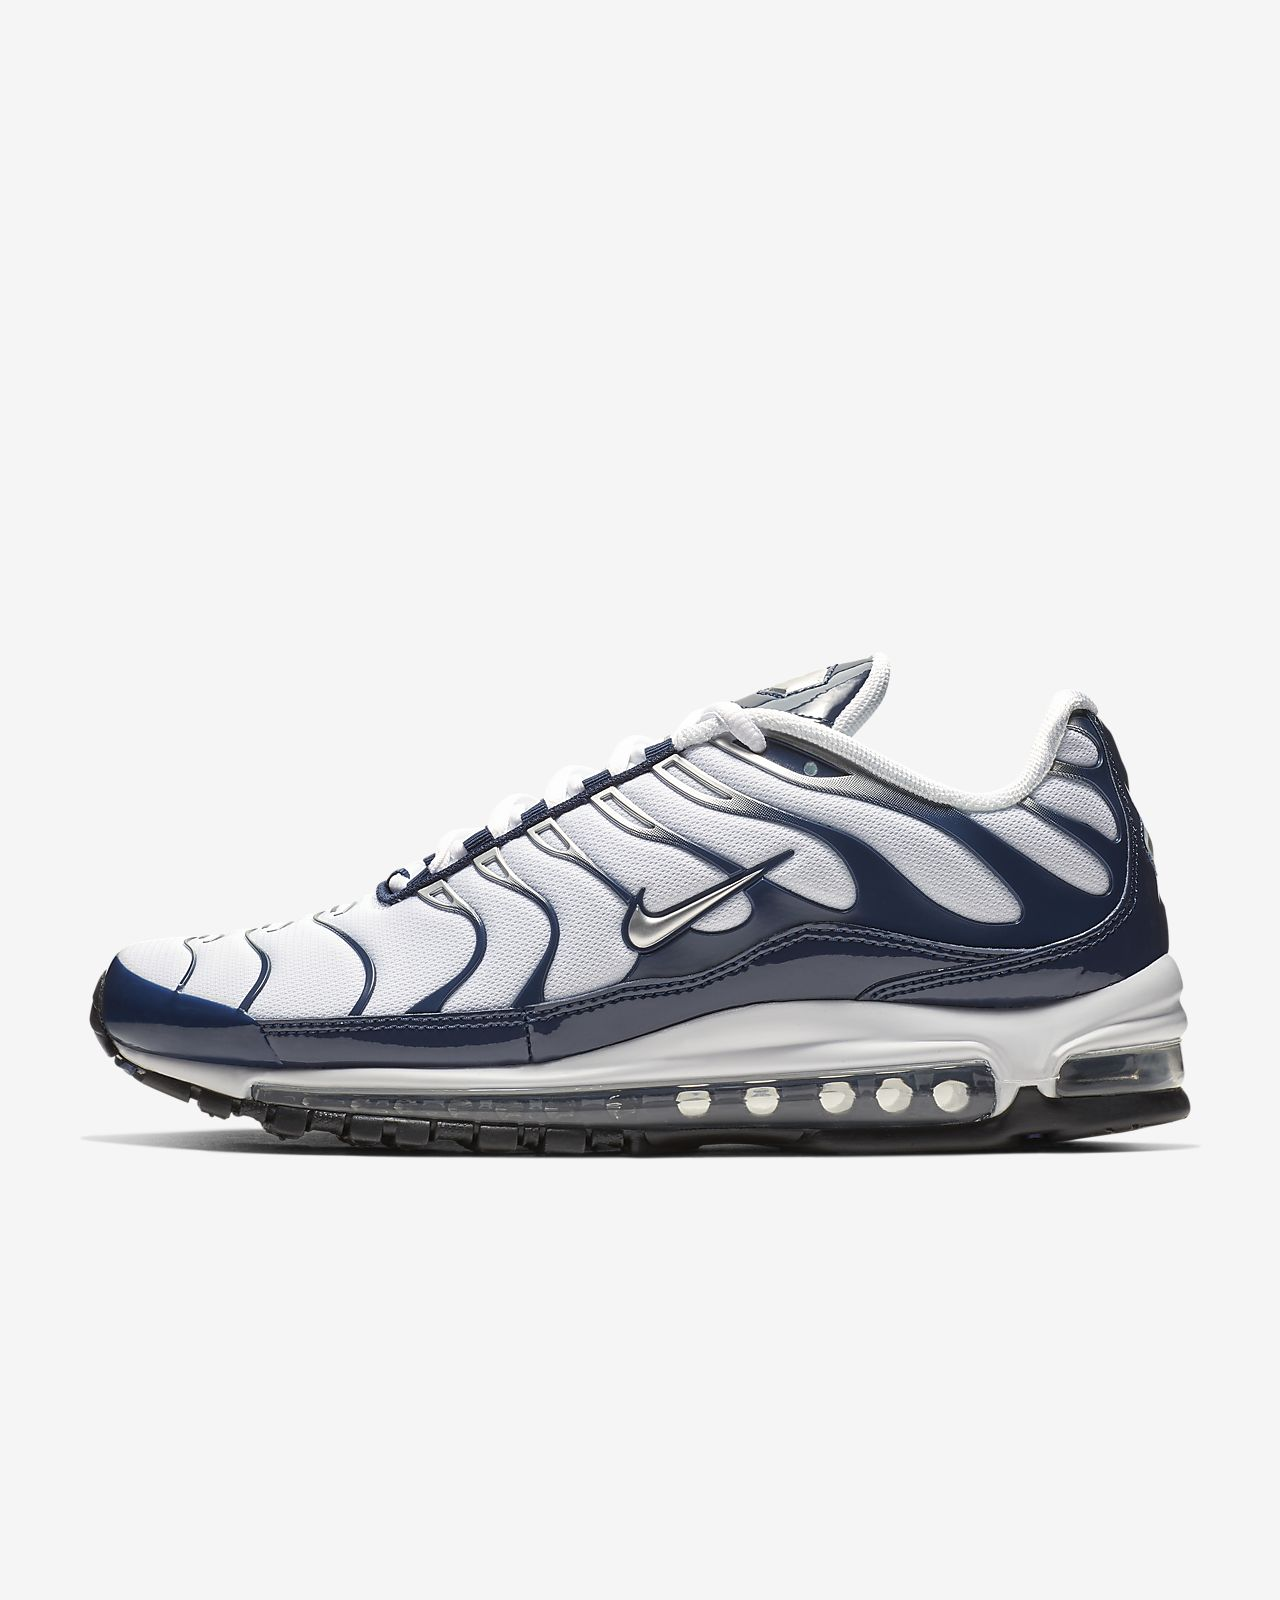 ... switzerland nike air max 97 plus mens shoe 04eee 6bea6 ec57315894